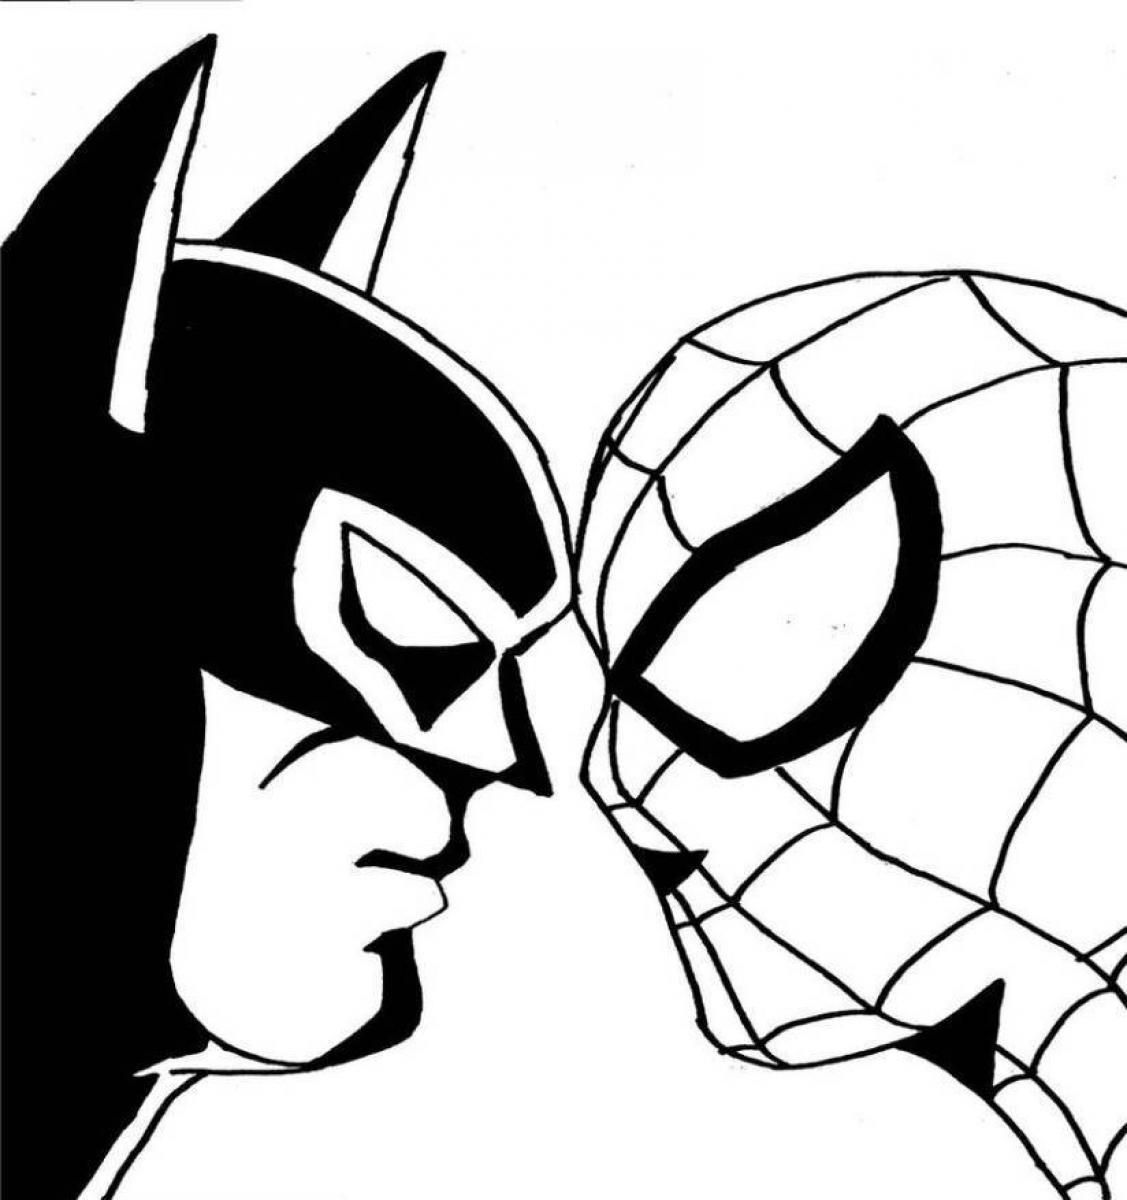 Spiderman online coloring pages for kids - Spiderman Batman Face To Face Coloring Pages Batman Coloring Pages Action Coloring Pages Dc Comics Coloring Pages Free Online Coloring Pages And